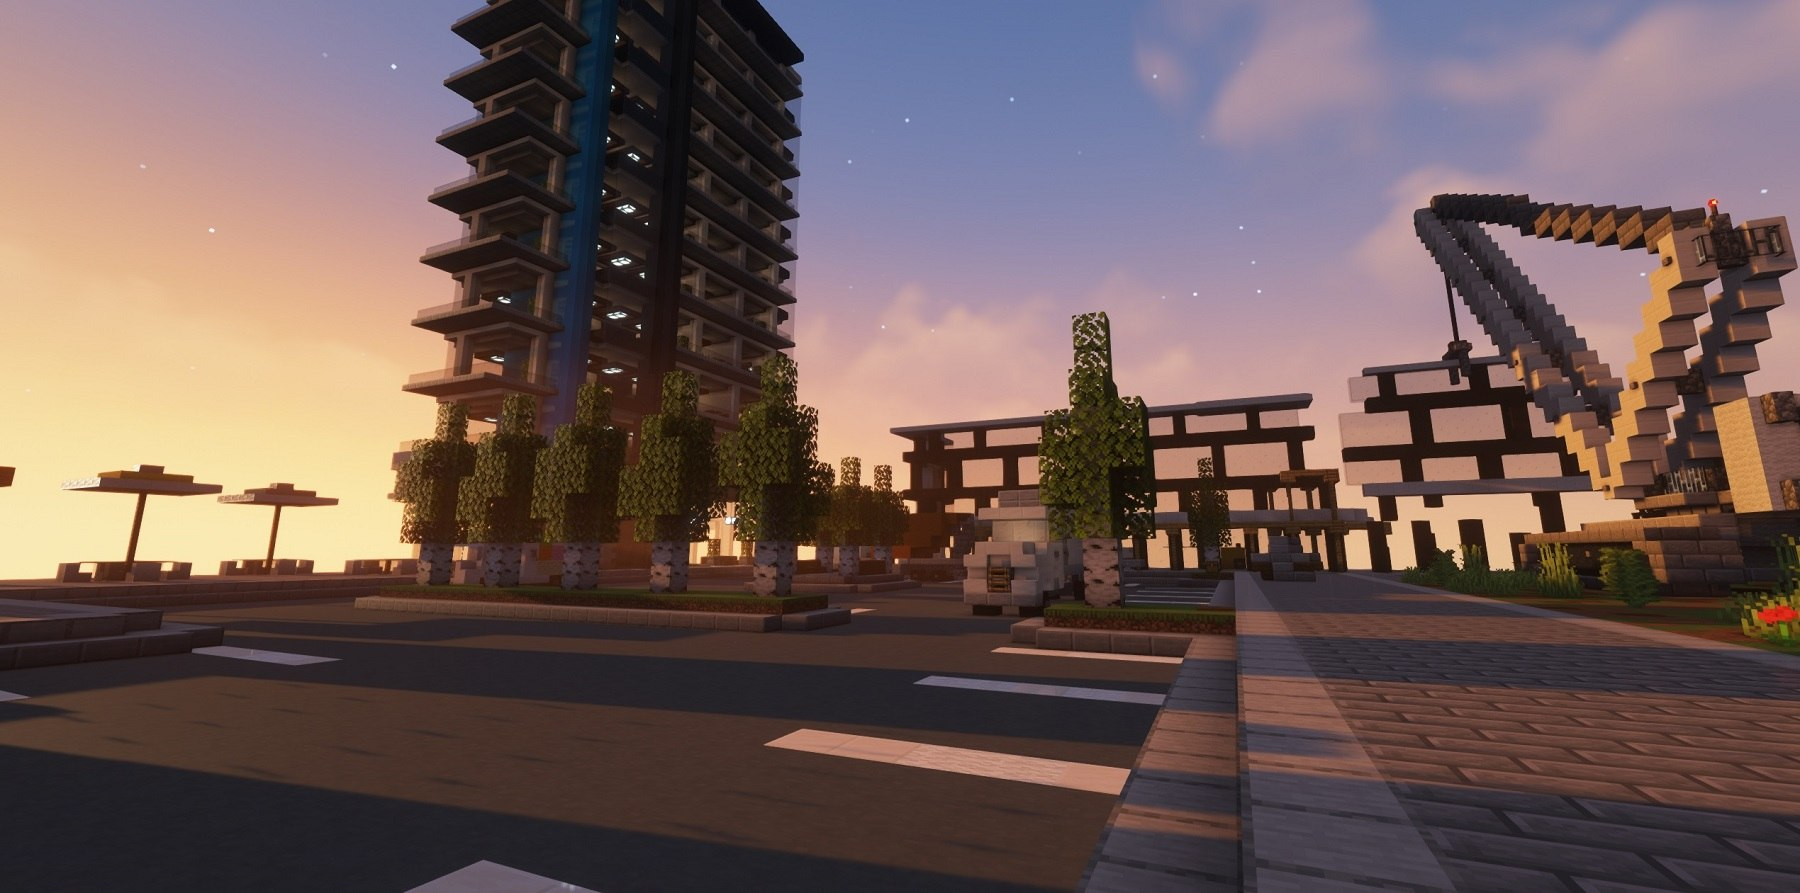 Complementary Shaders Minecraft shadery BSL edit 7